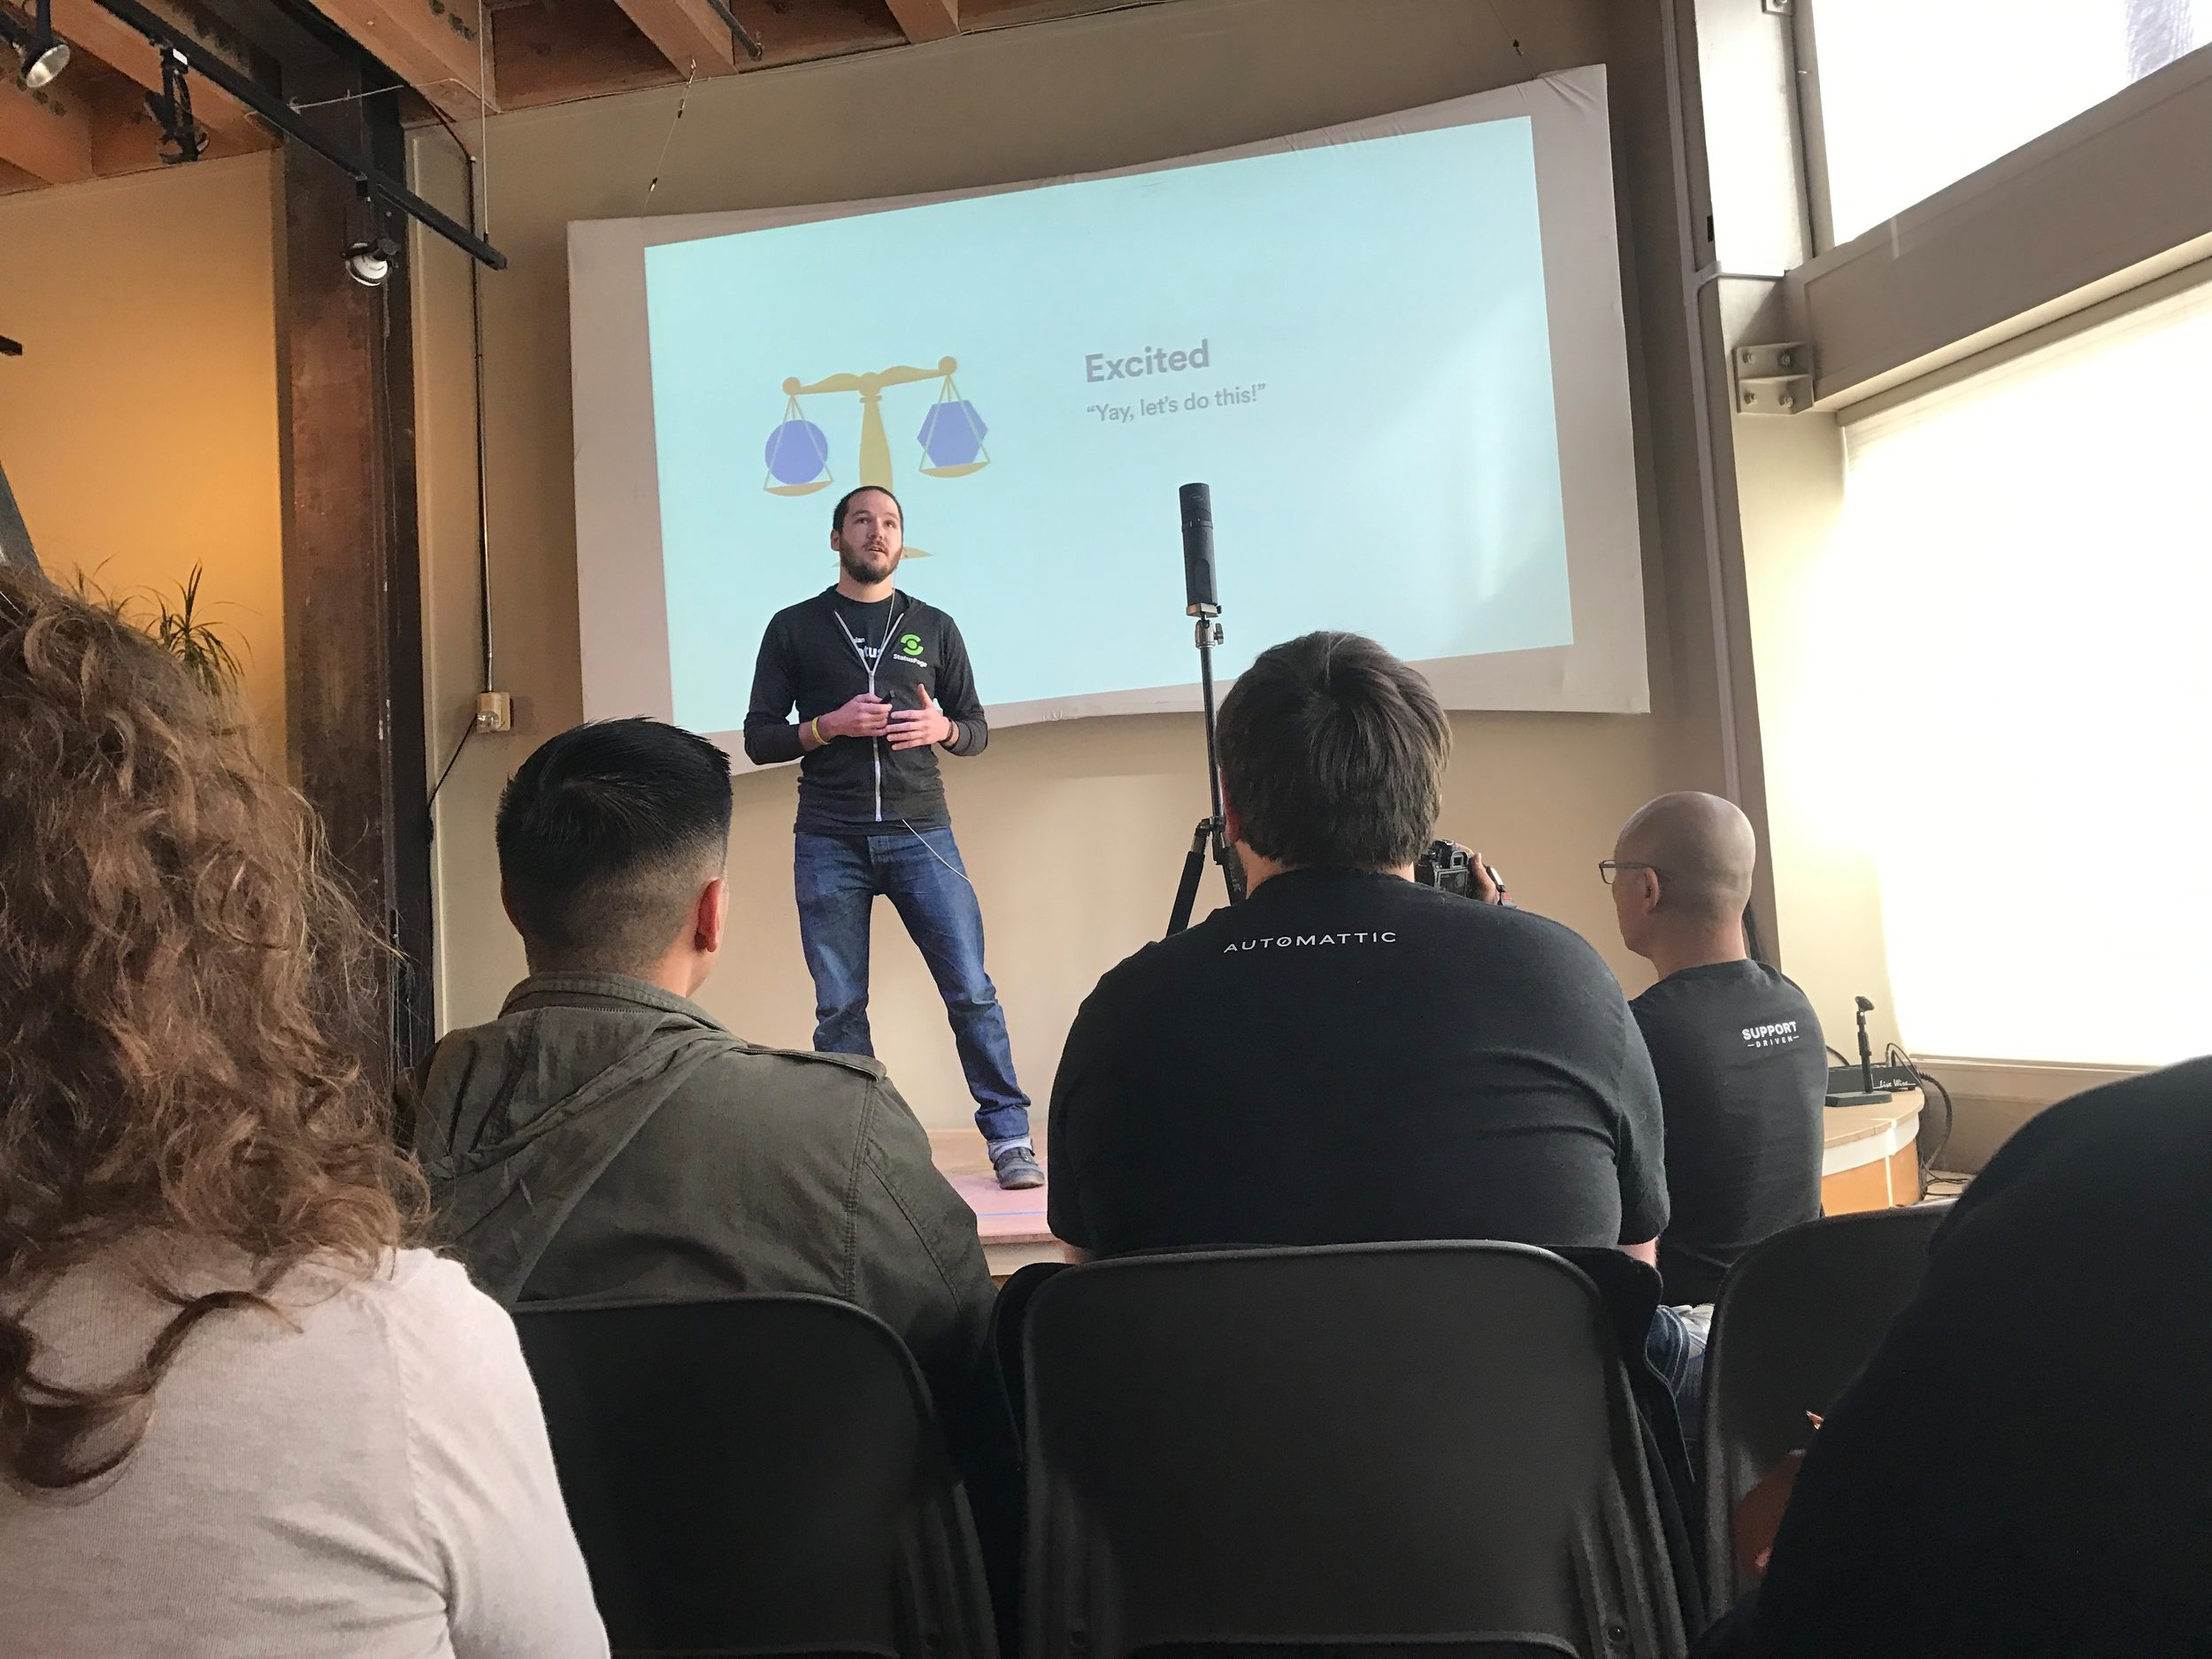 Speaker at Customer Support event | Seattle, WA